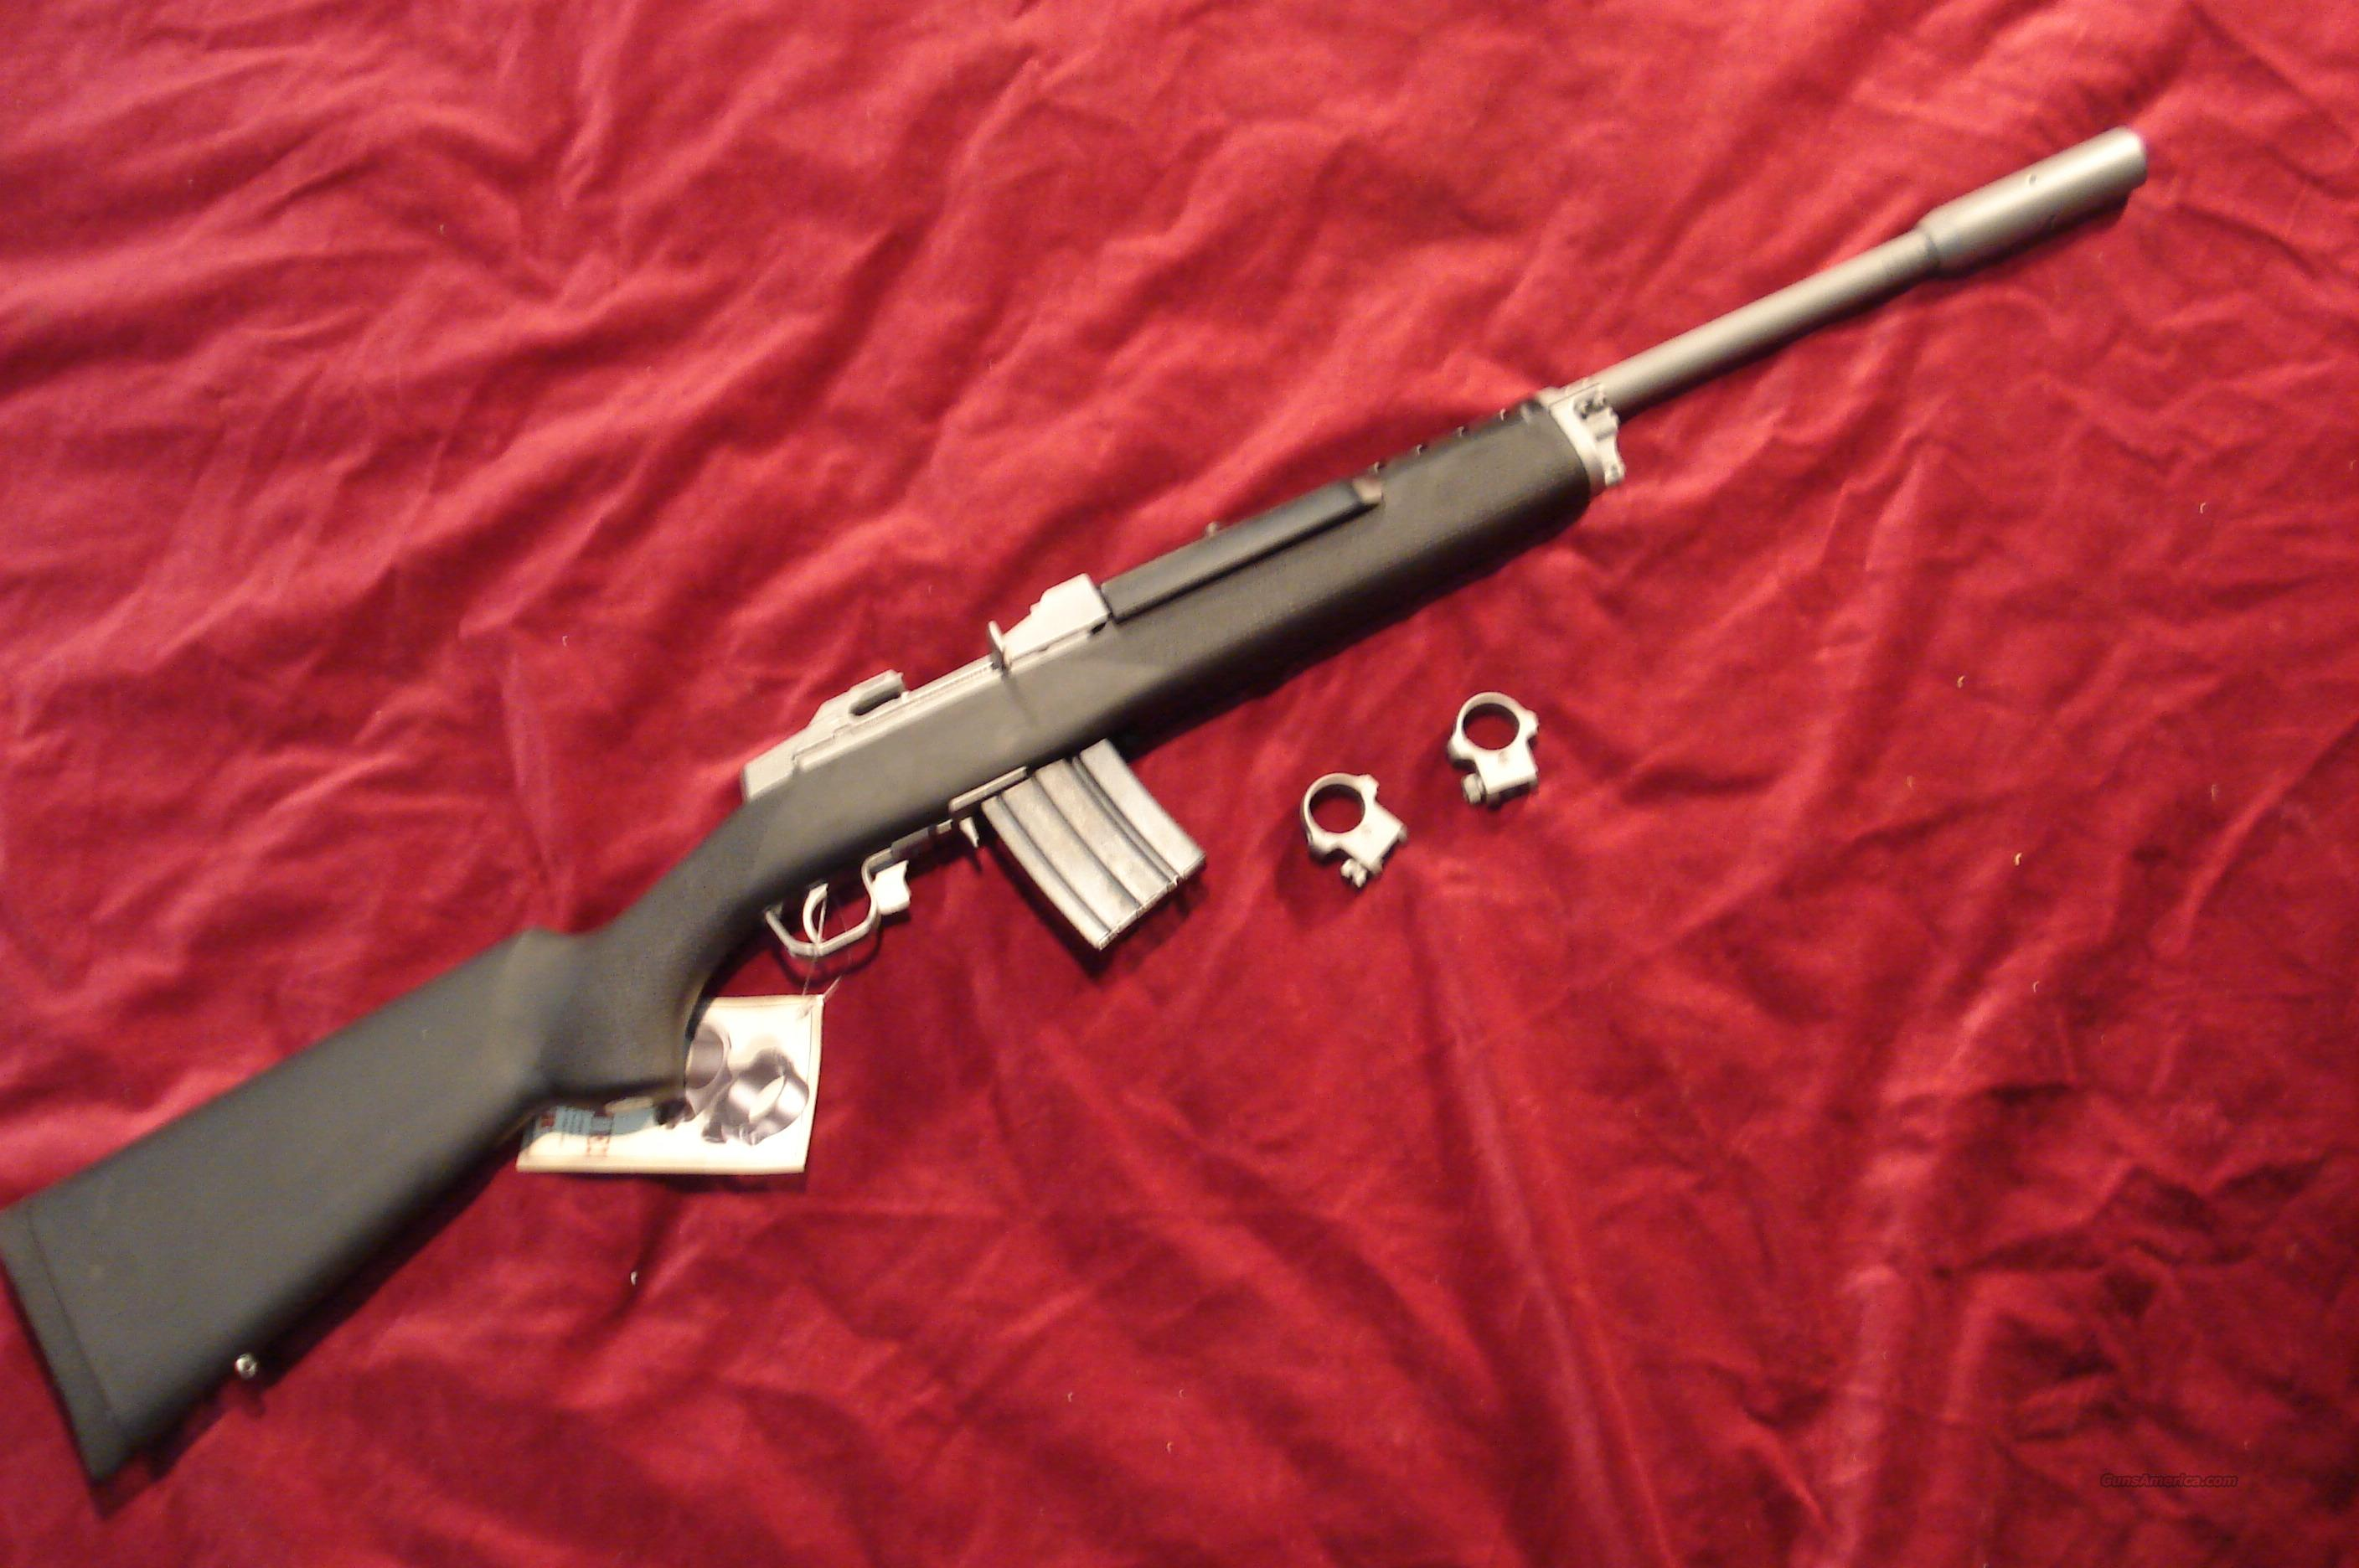 RUGER  STAINLESS MINI 14T TARGET RIFLE W/HOGUE STOCK 20 ROUND NEW  Guns > Rifles > Ruger Rifles > Mini-14 Type